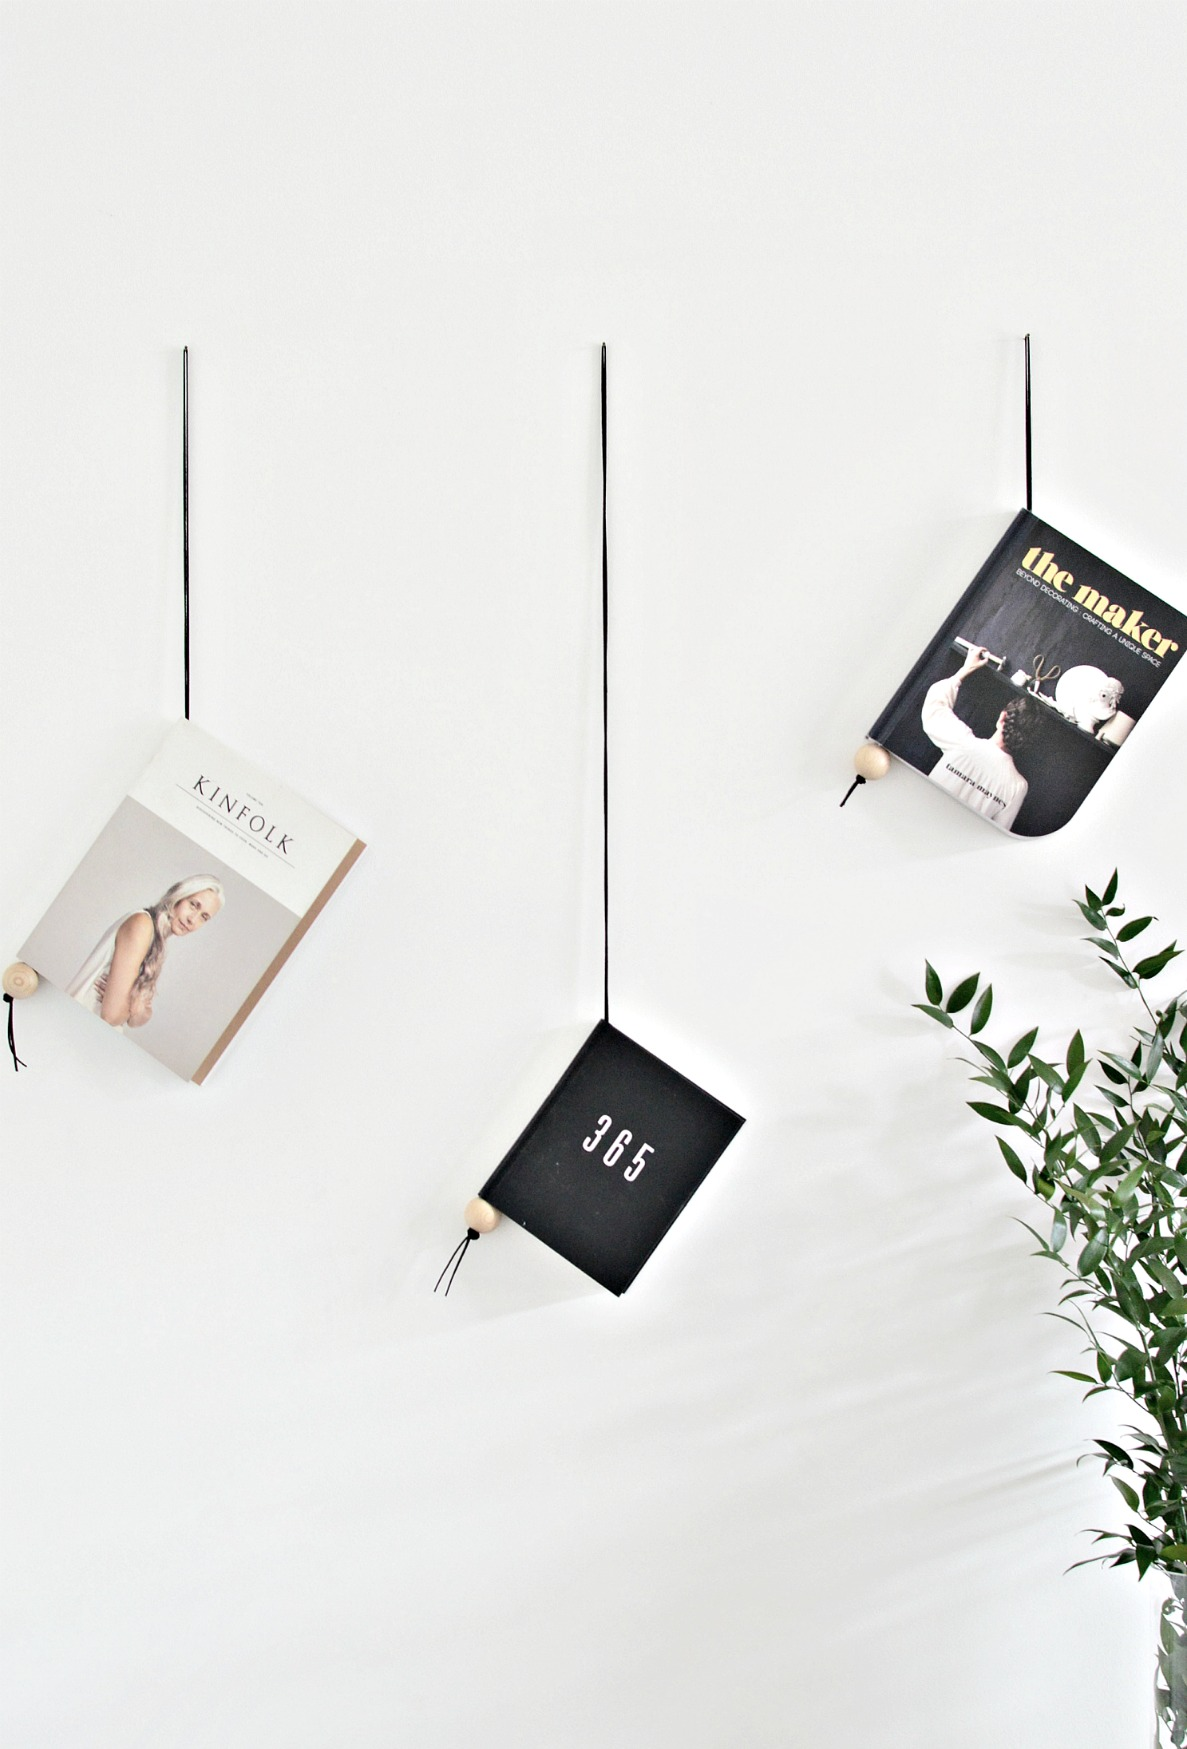 Minimal suede and wood magazine holder DIY - DIY home